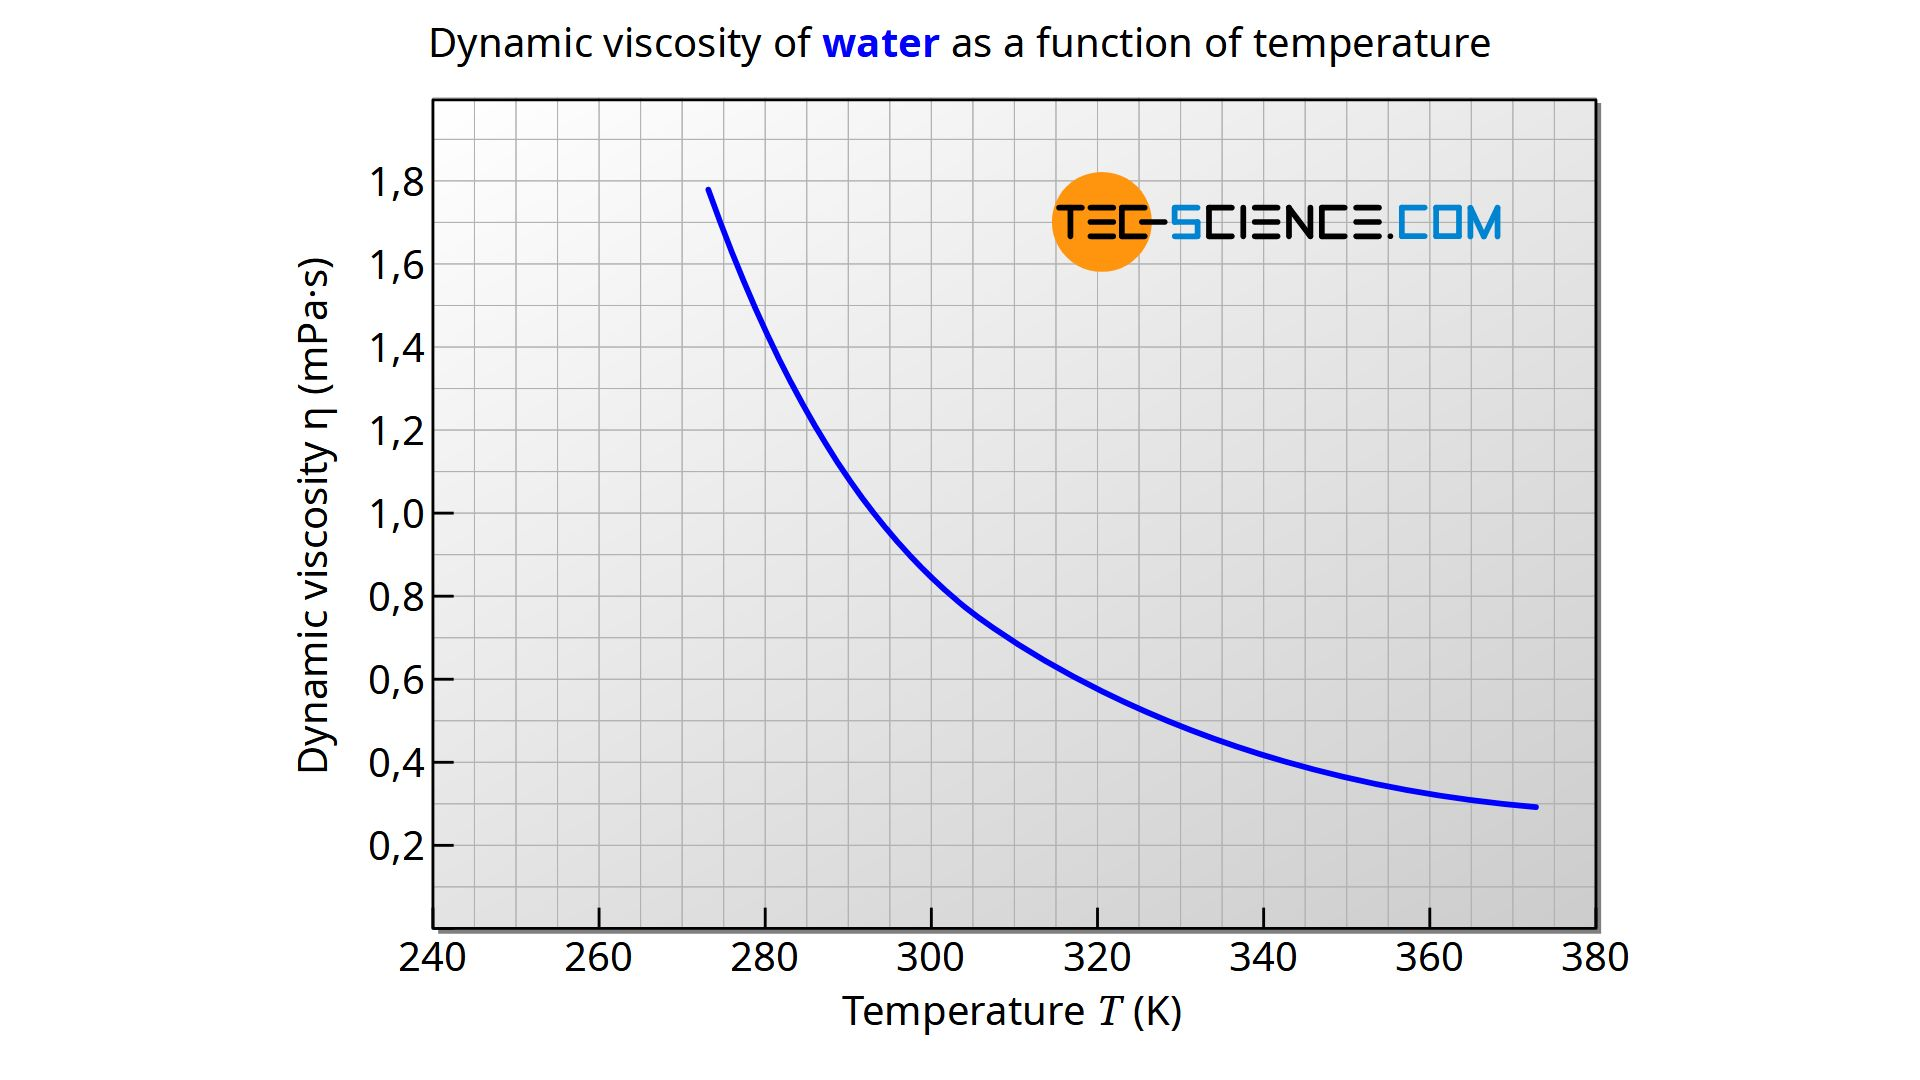 Dynamic viscosity of water as a function of temperature